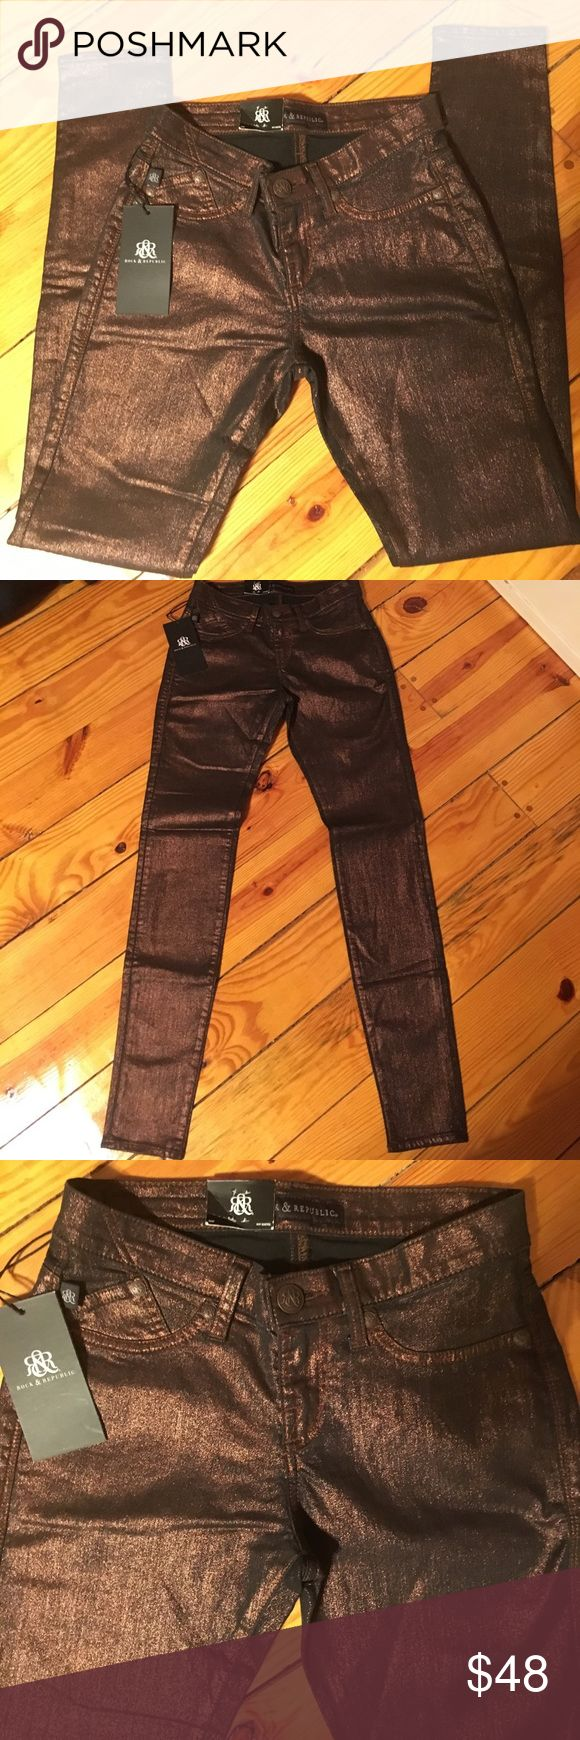 Rock & Republic Copperhead Jeans Rock & Republic stretch jean leggings. Great for the fall and winter for holidays or clubbing or just having fun. So cute... see pics for details.  These are a leggin jean. Rock & Republic Jeans Skinny